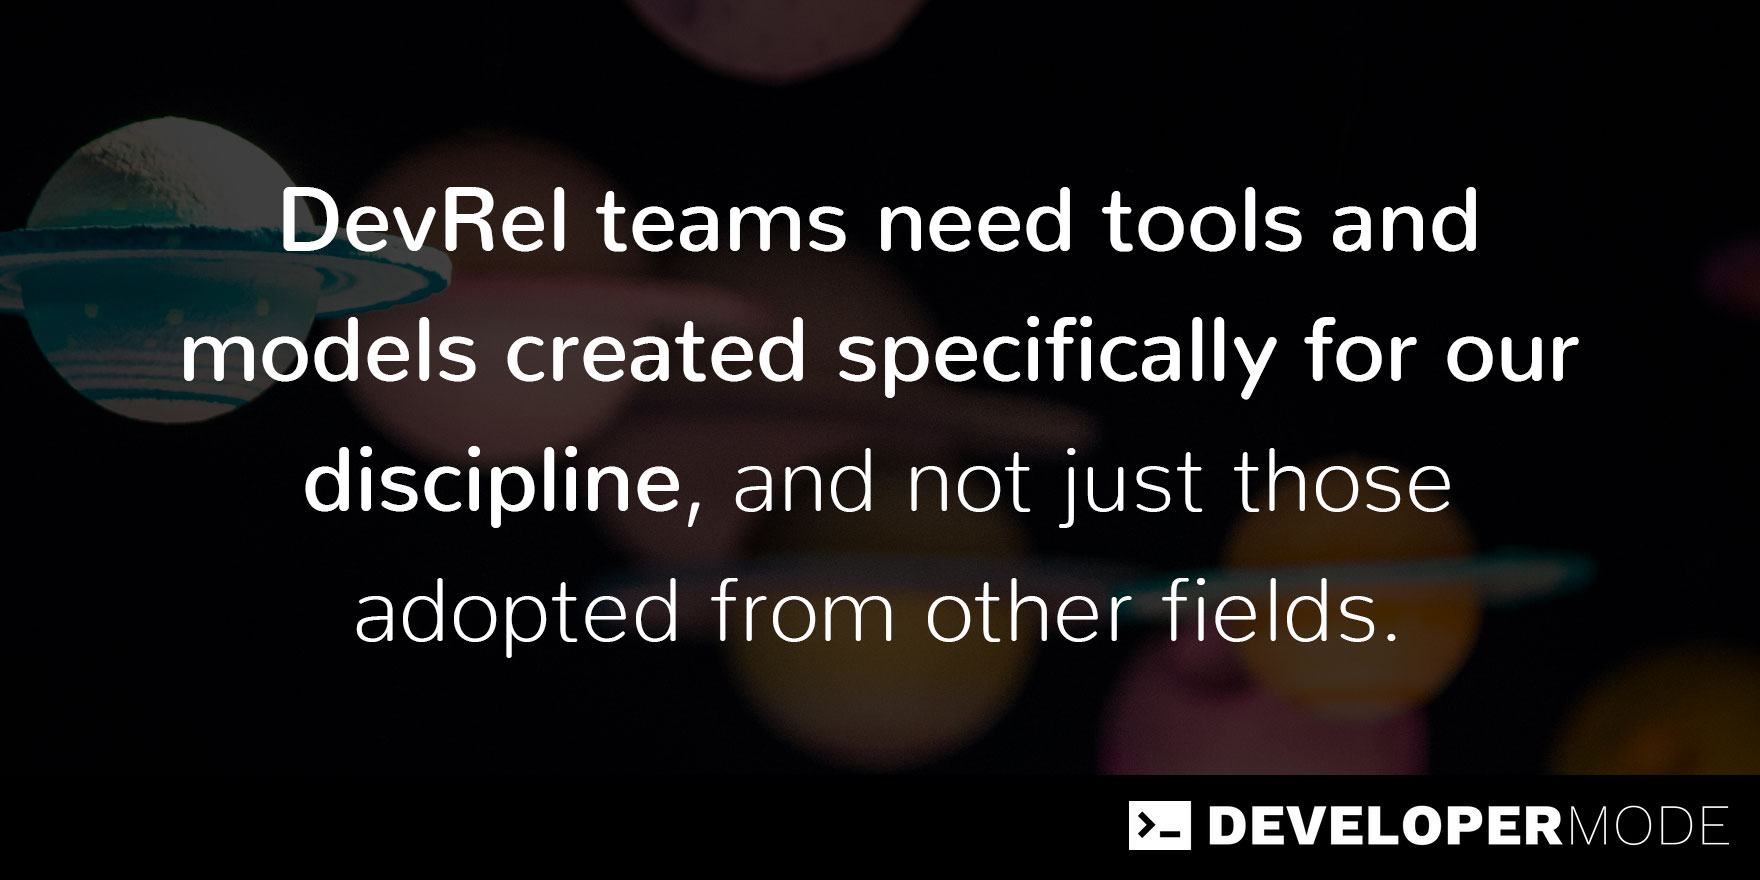 Quote text that says DevRel teams need tools and models created specifically for our discipline, and not just those adopted from other fields.